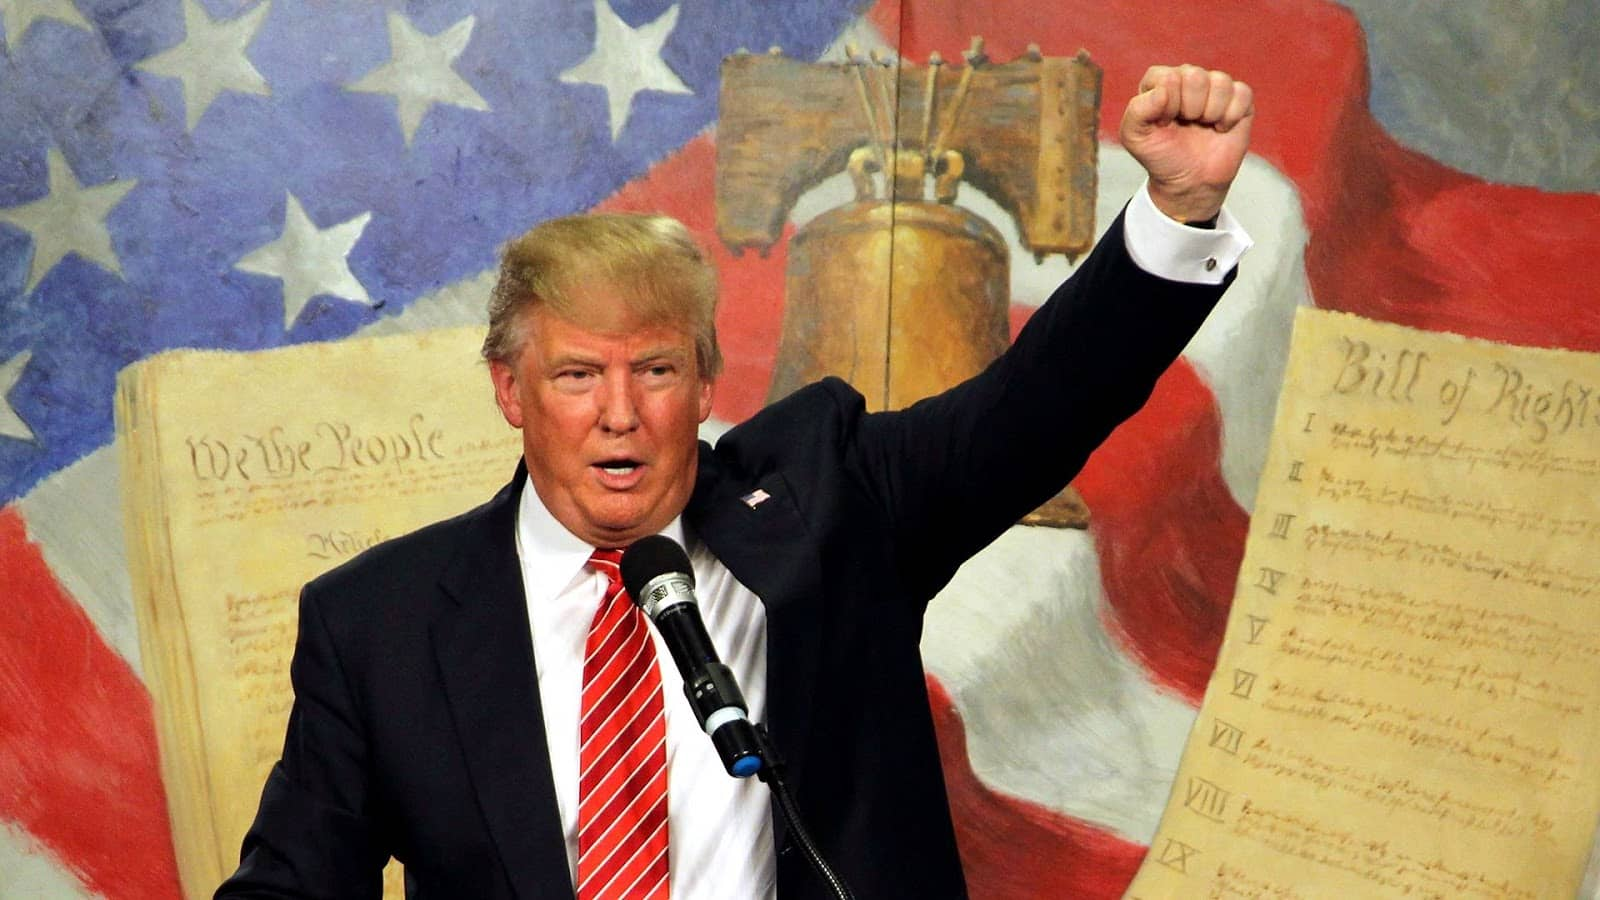 Jan. 6th Committee subpoenas four from Trump's inner circle - Veterans Today